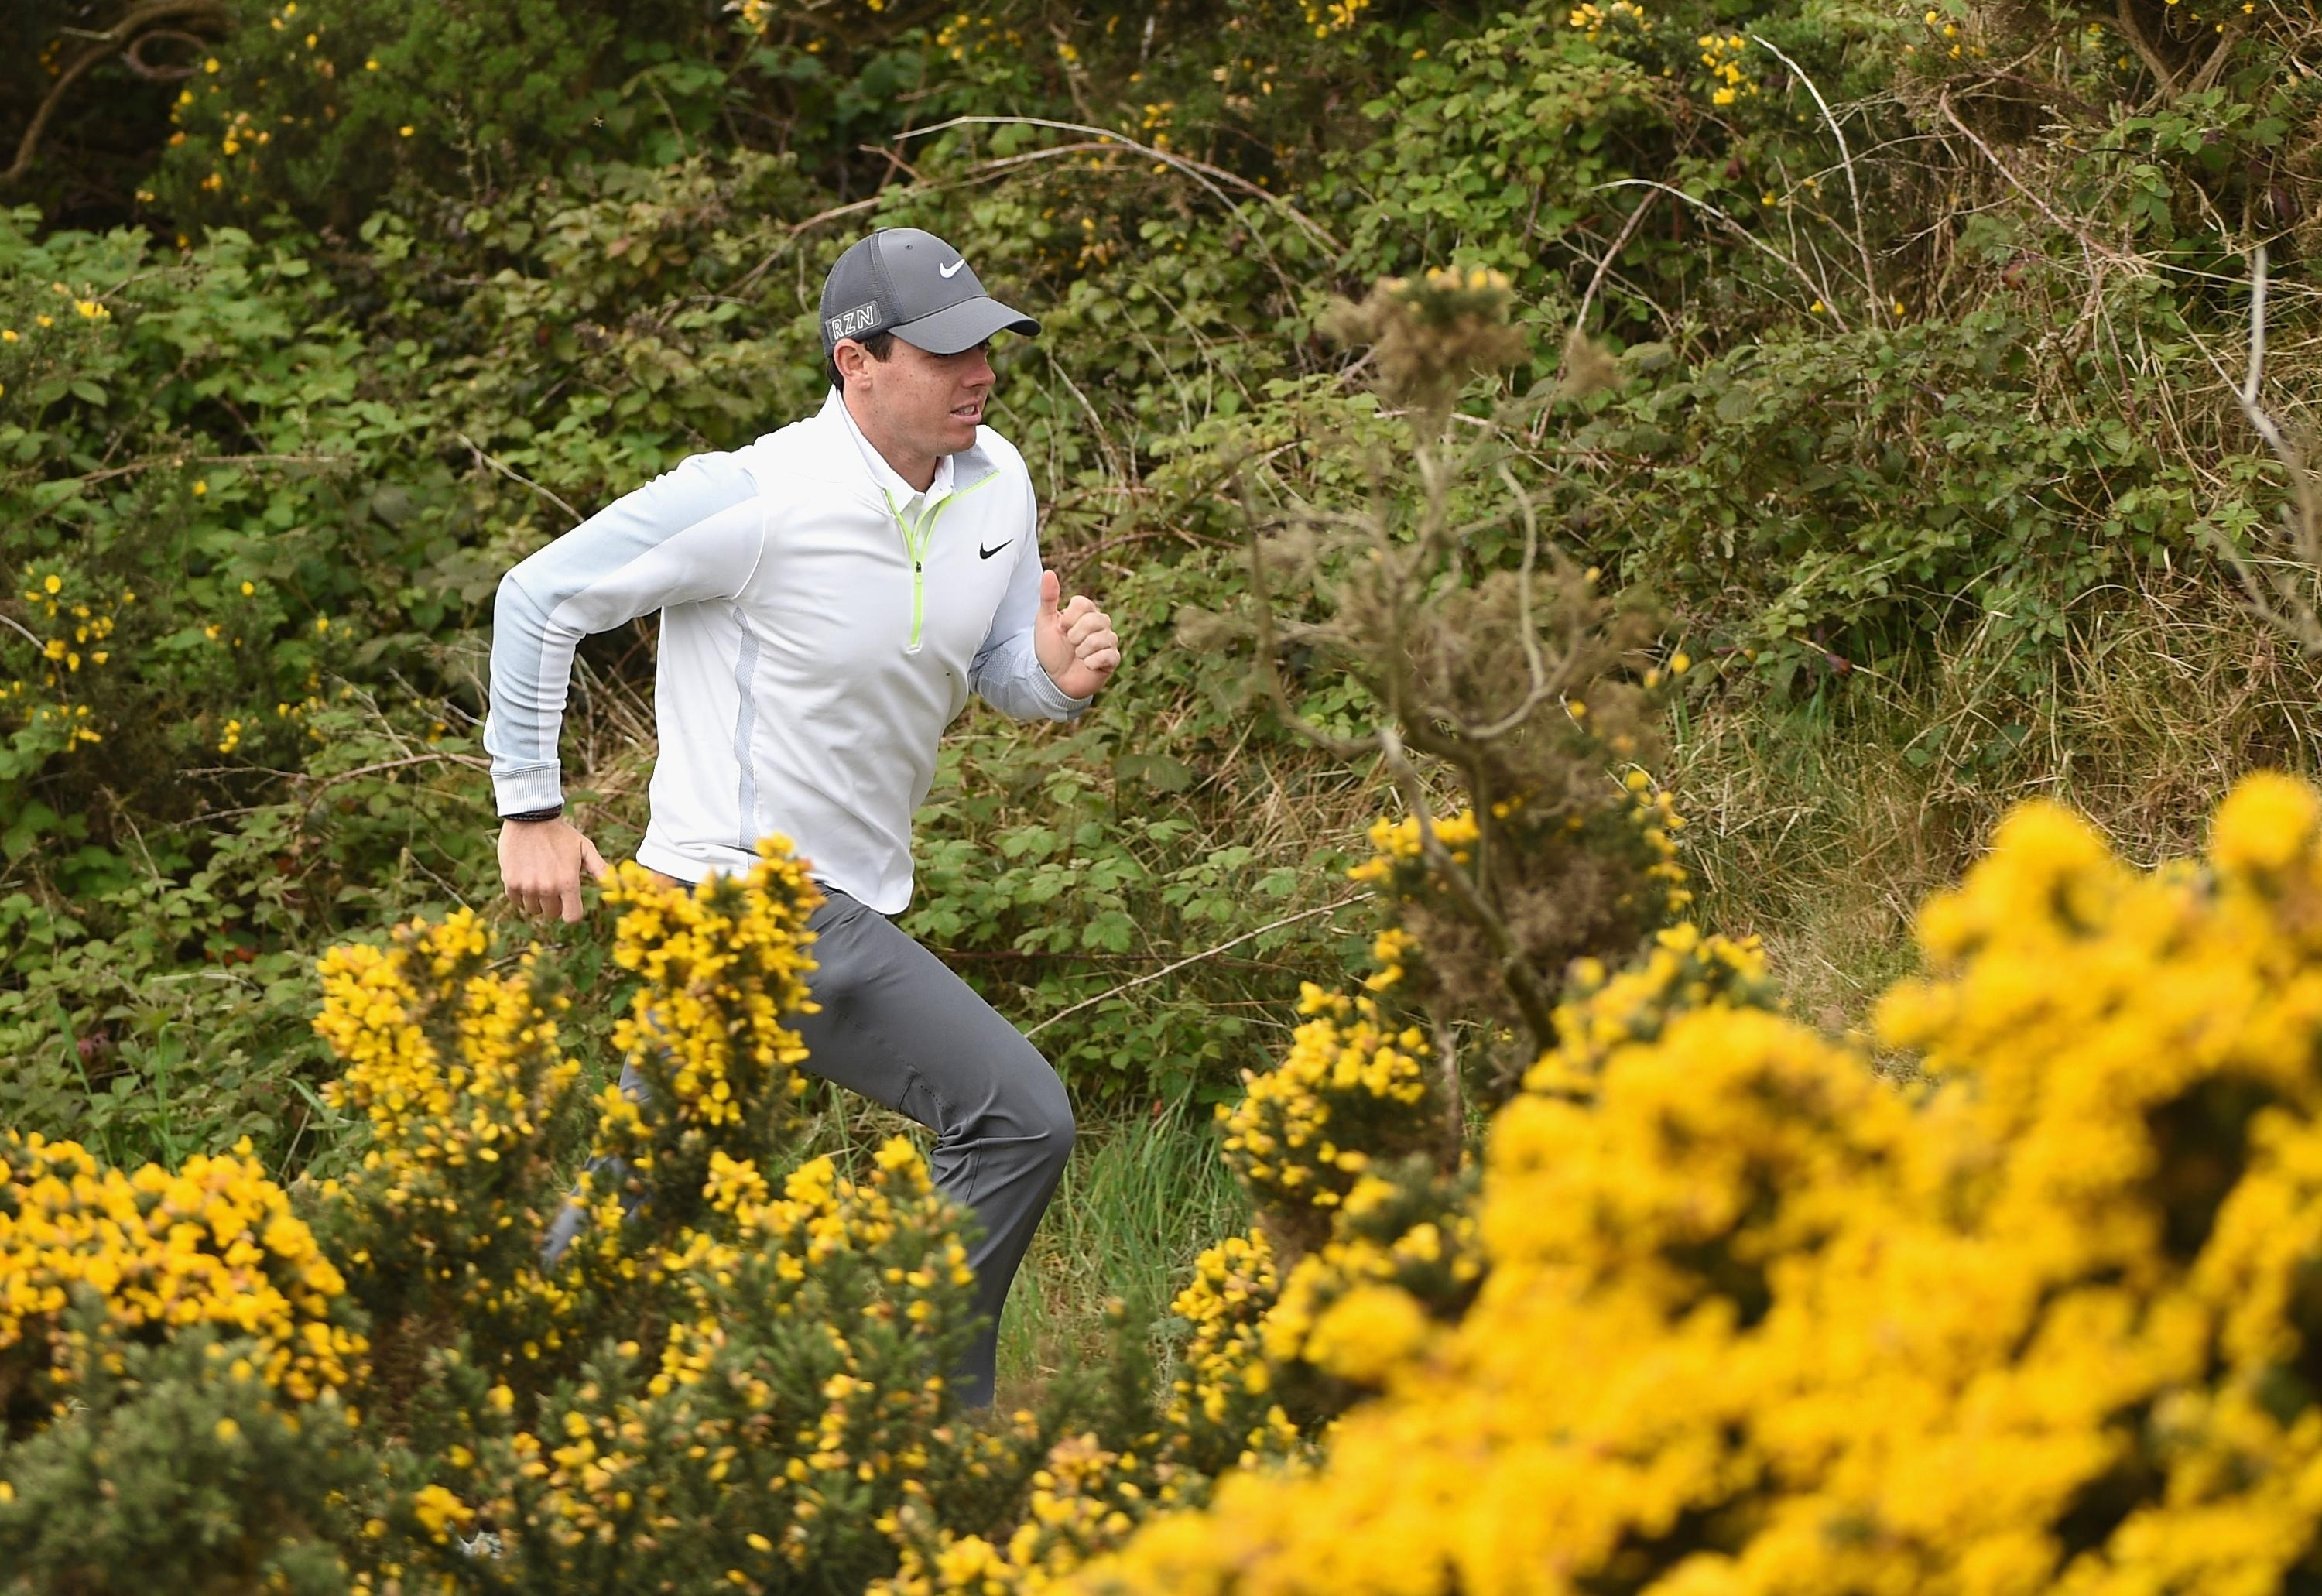 Rory McIlroy to donate Irish Open prize money to charity if he wins